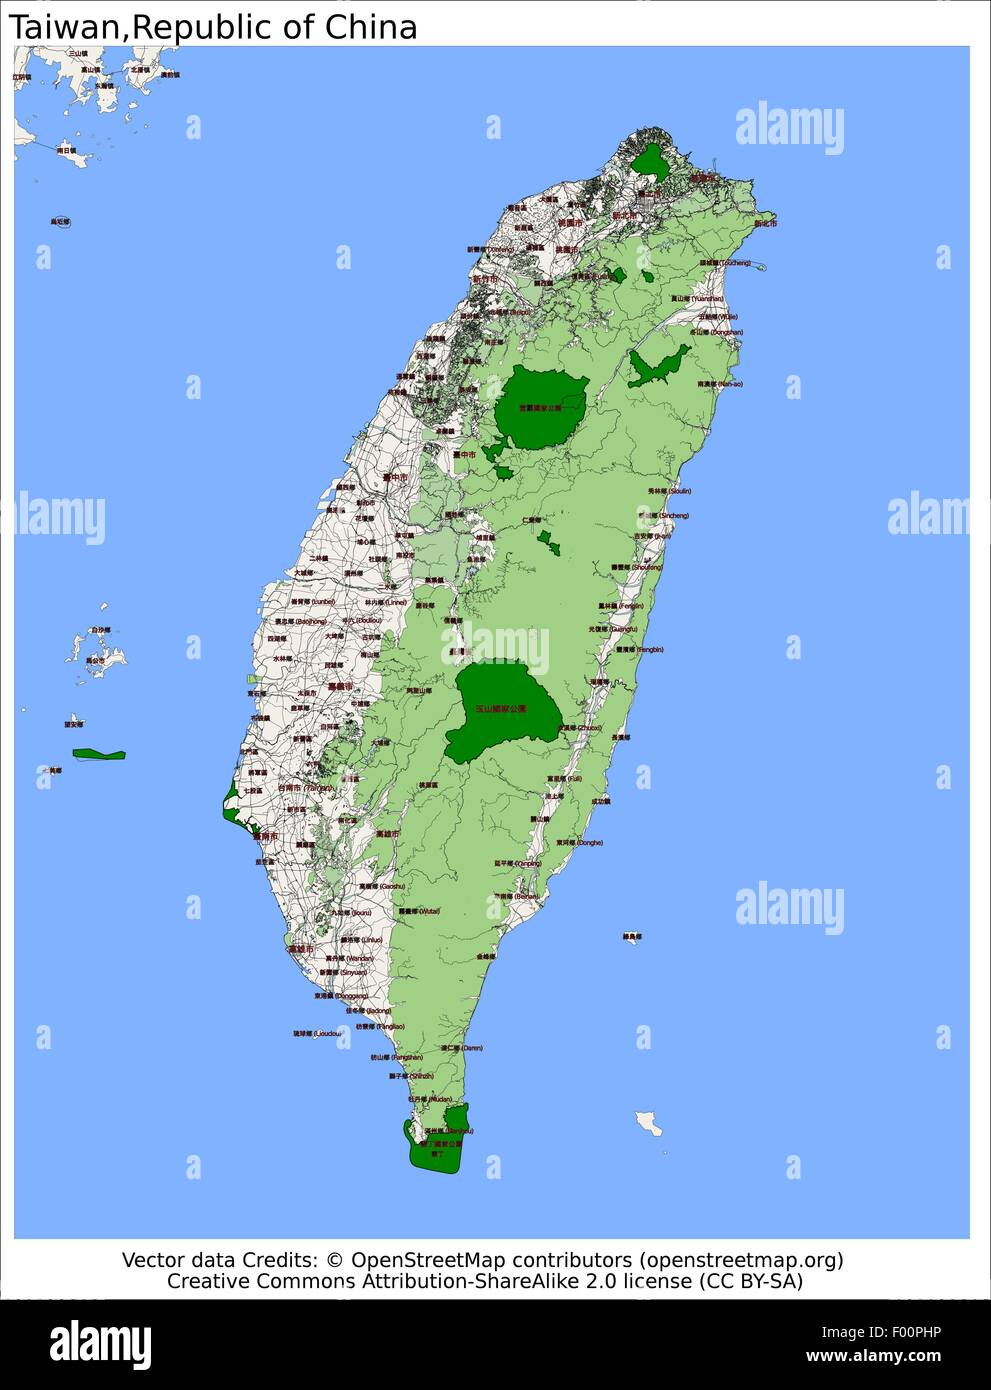 Taiwan Republic of China Country city island state location map